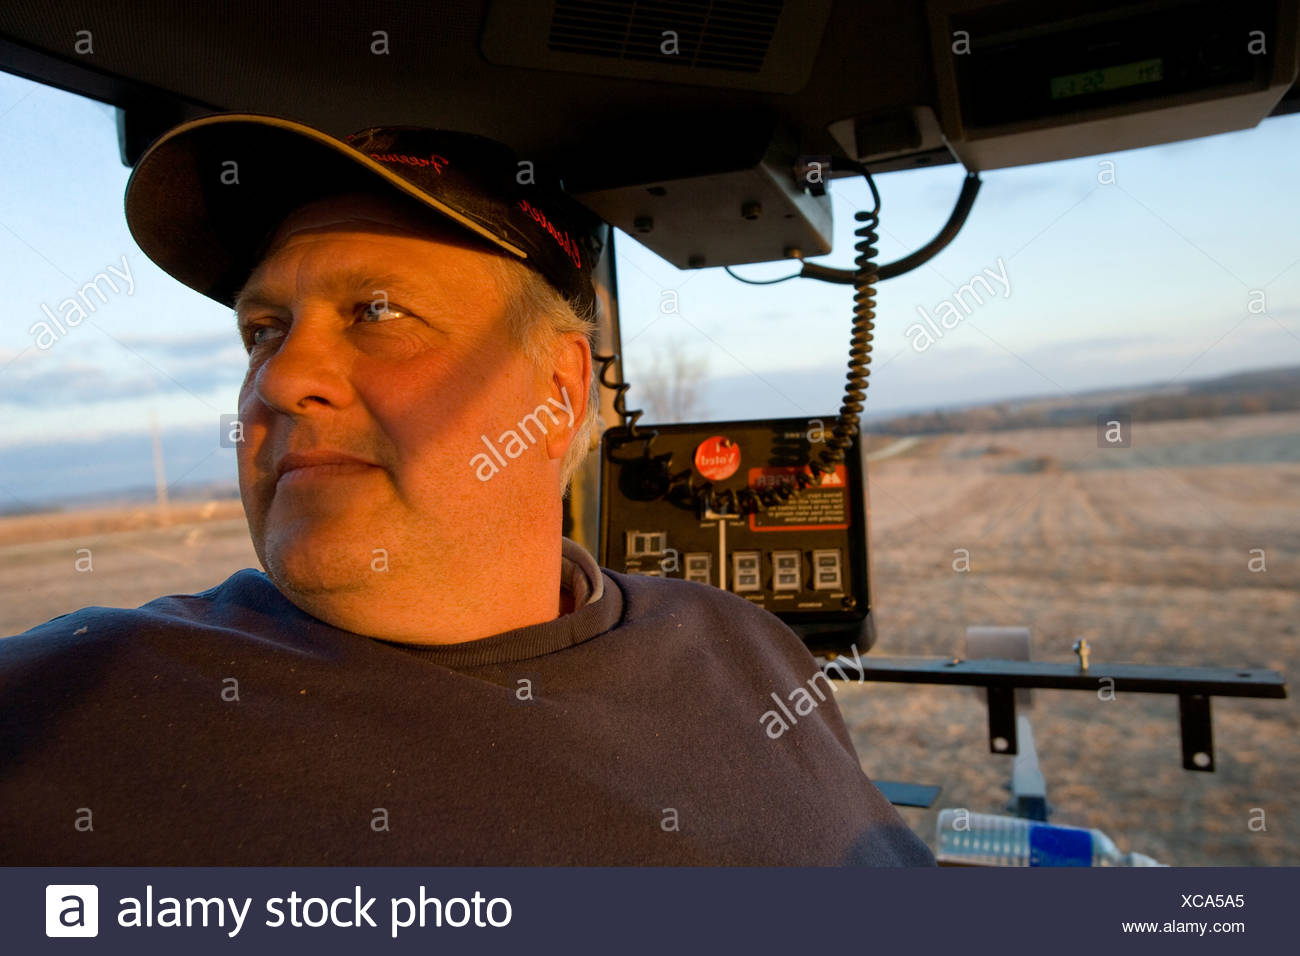 A farmer looks out from the inside of a tractor cab during the Autumn grain corn harvest / near Northland, Minnesota, USA. - Stock Image